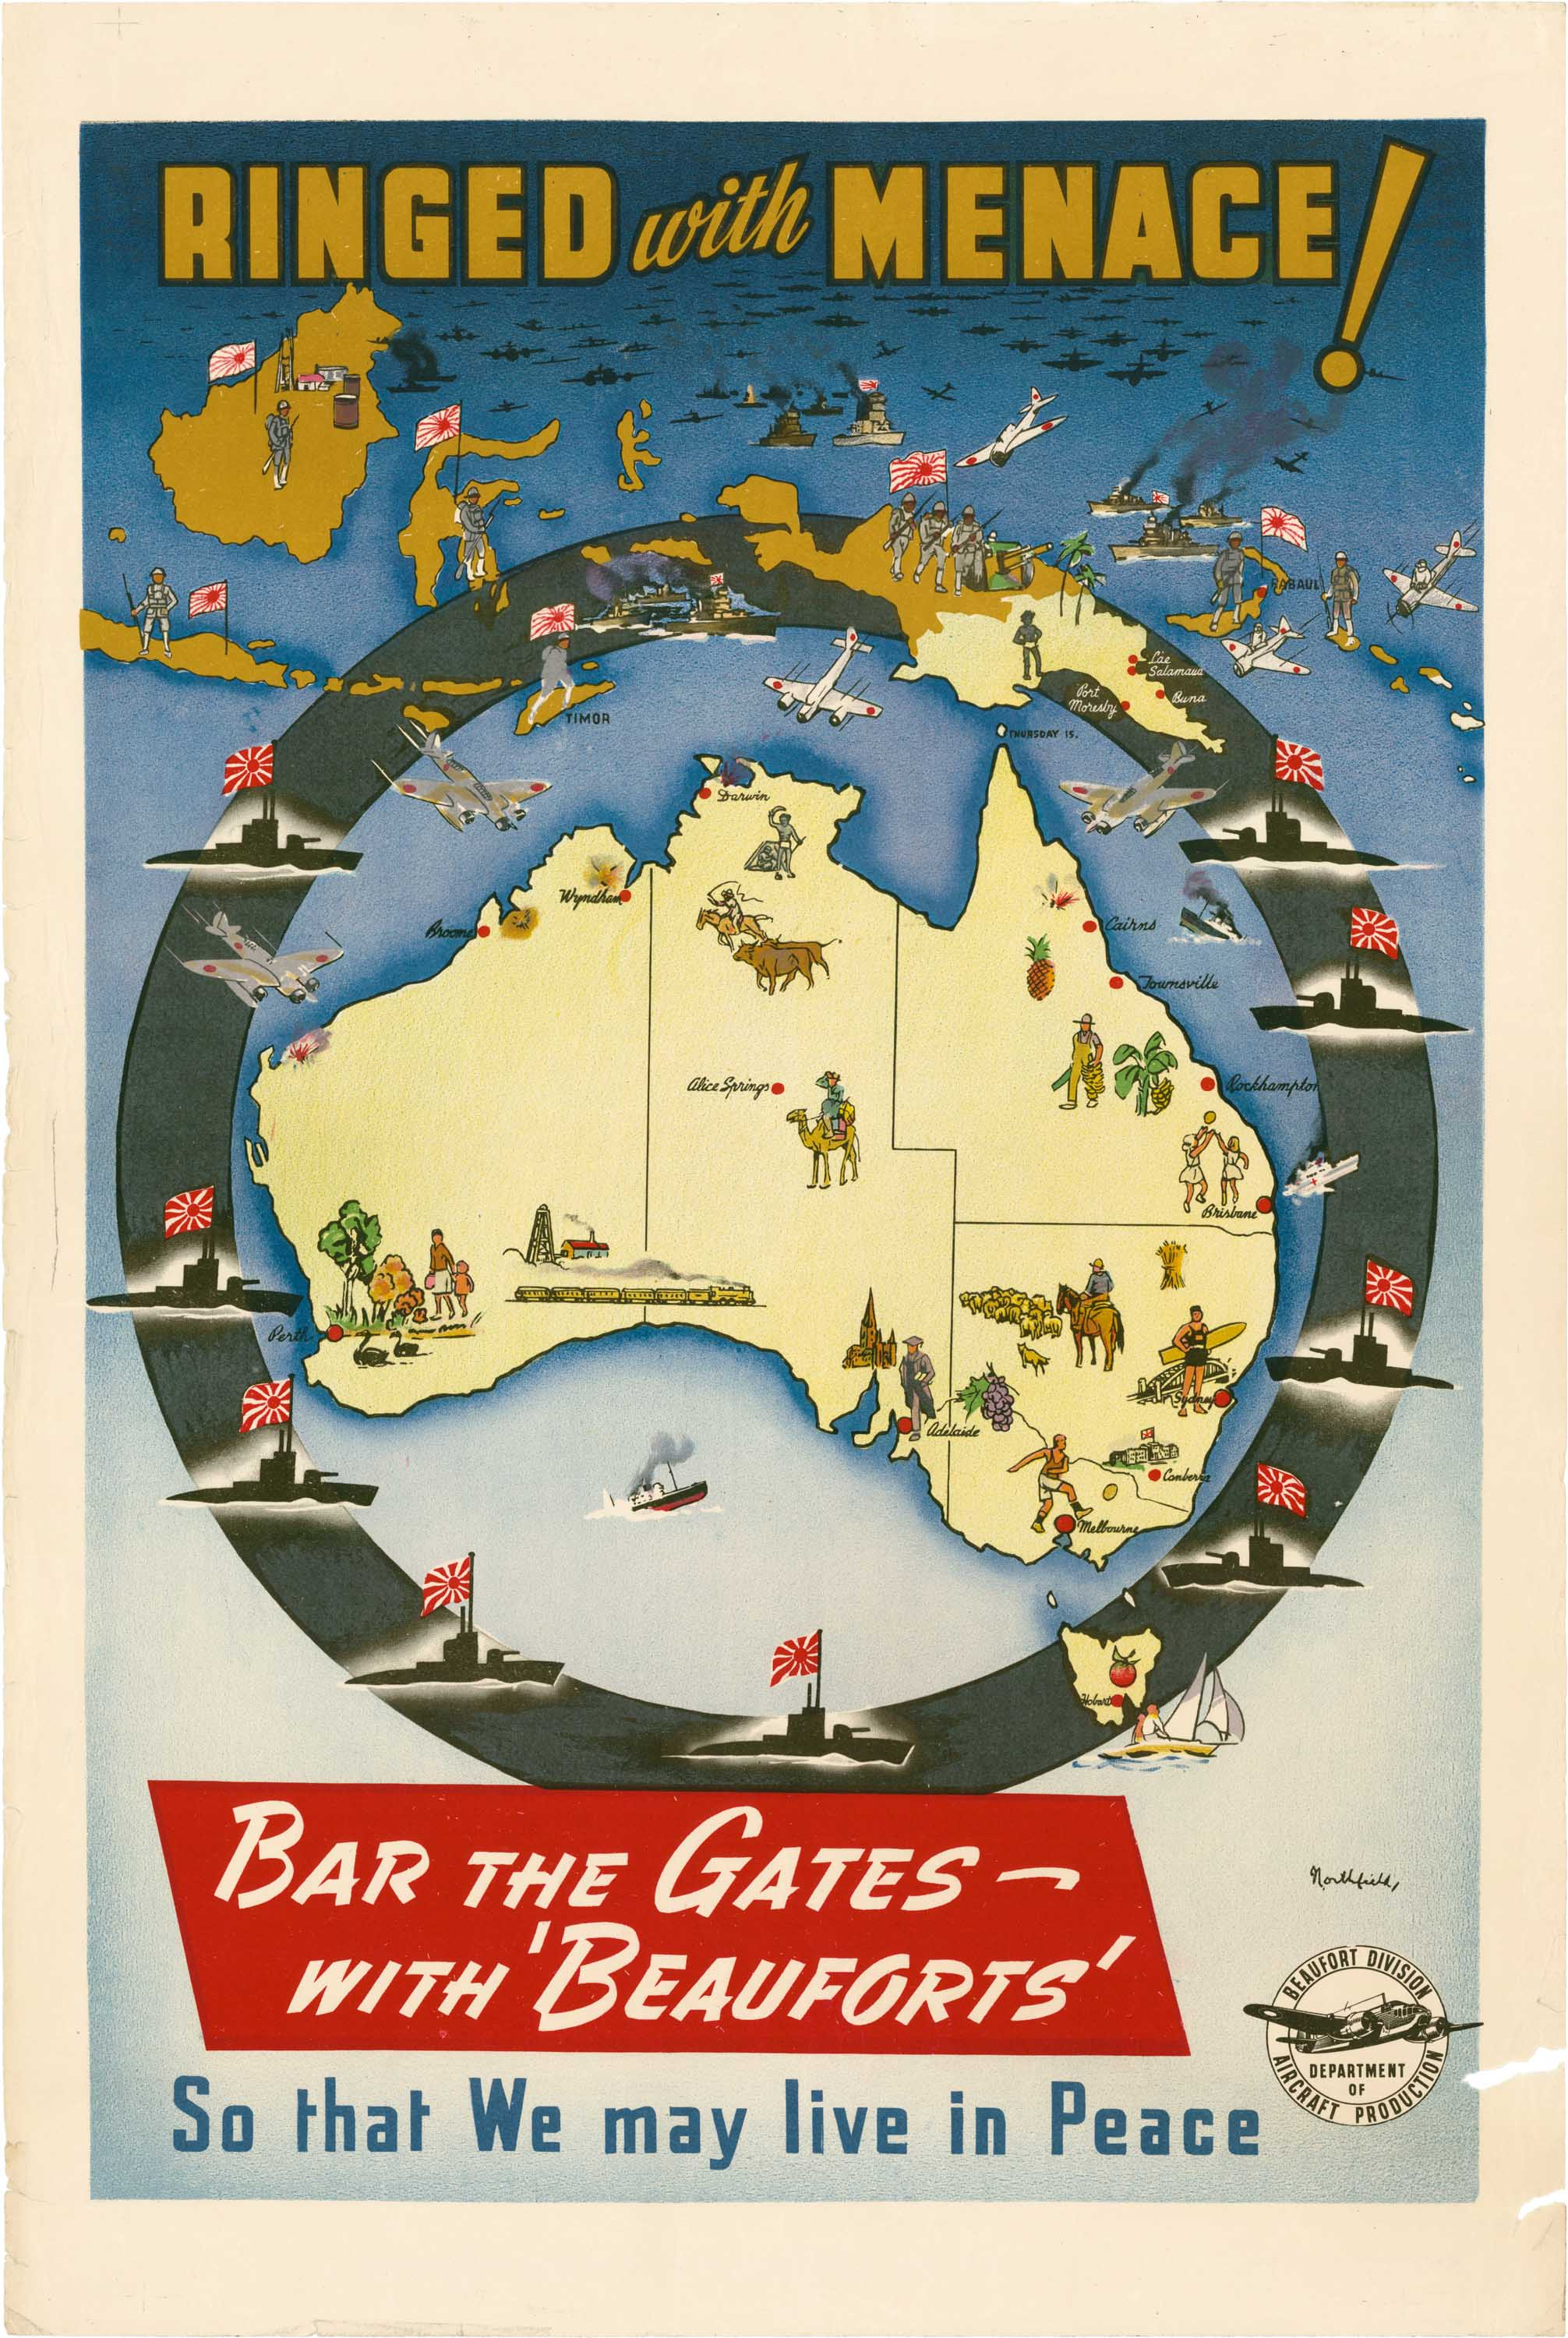 Australian Online Catalogues A Thousand Words Australian Propaganda Posters Japanese